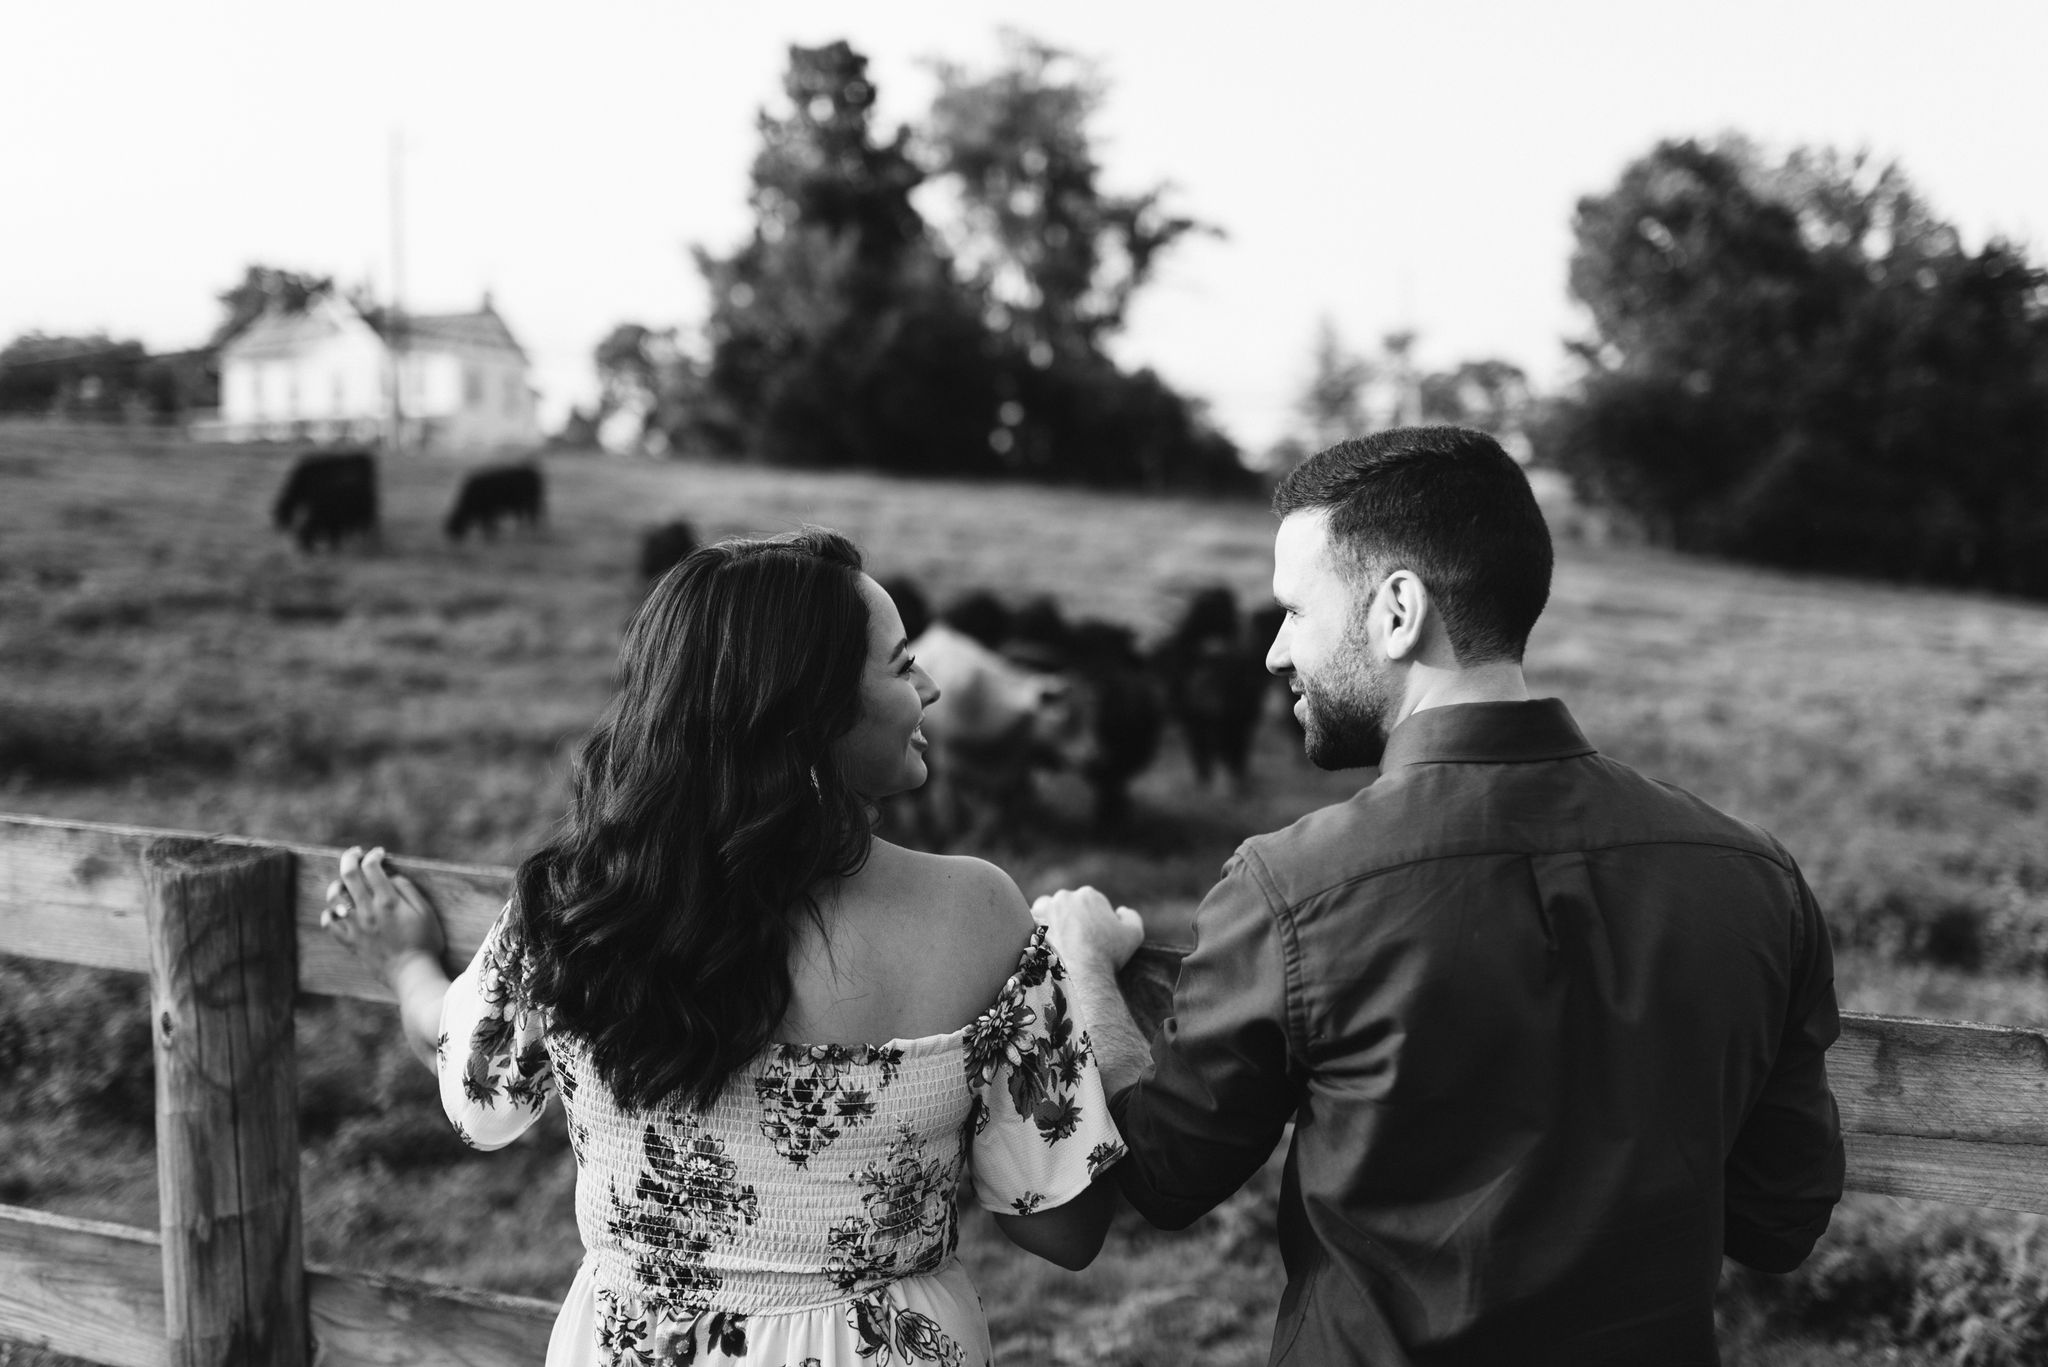 Frederick Maryland, Baltimore Wedding Photographer, Engagement, Bend in the River Farm, Outdoor, Rustic, Nature, Bride and Groom Looking Over Field of Cows, Animals, Black and White Photo